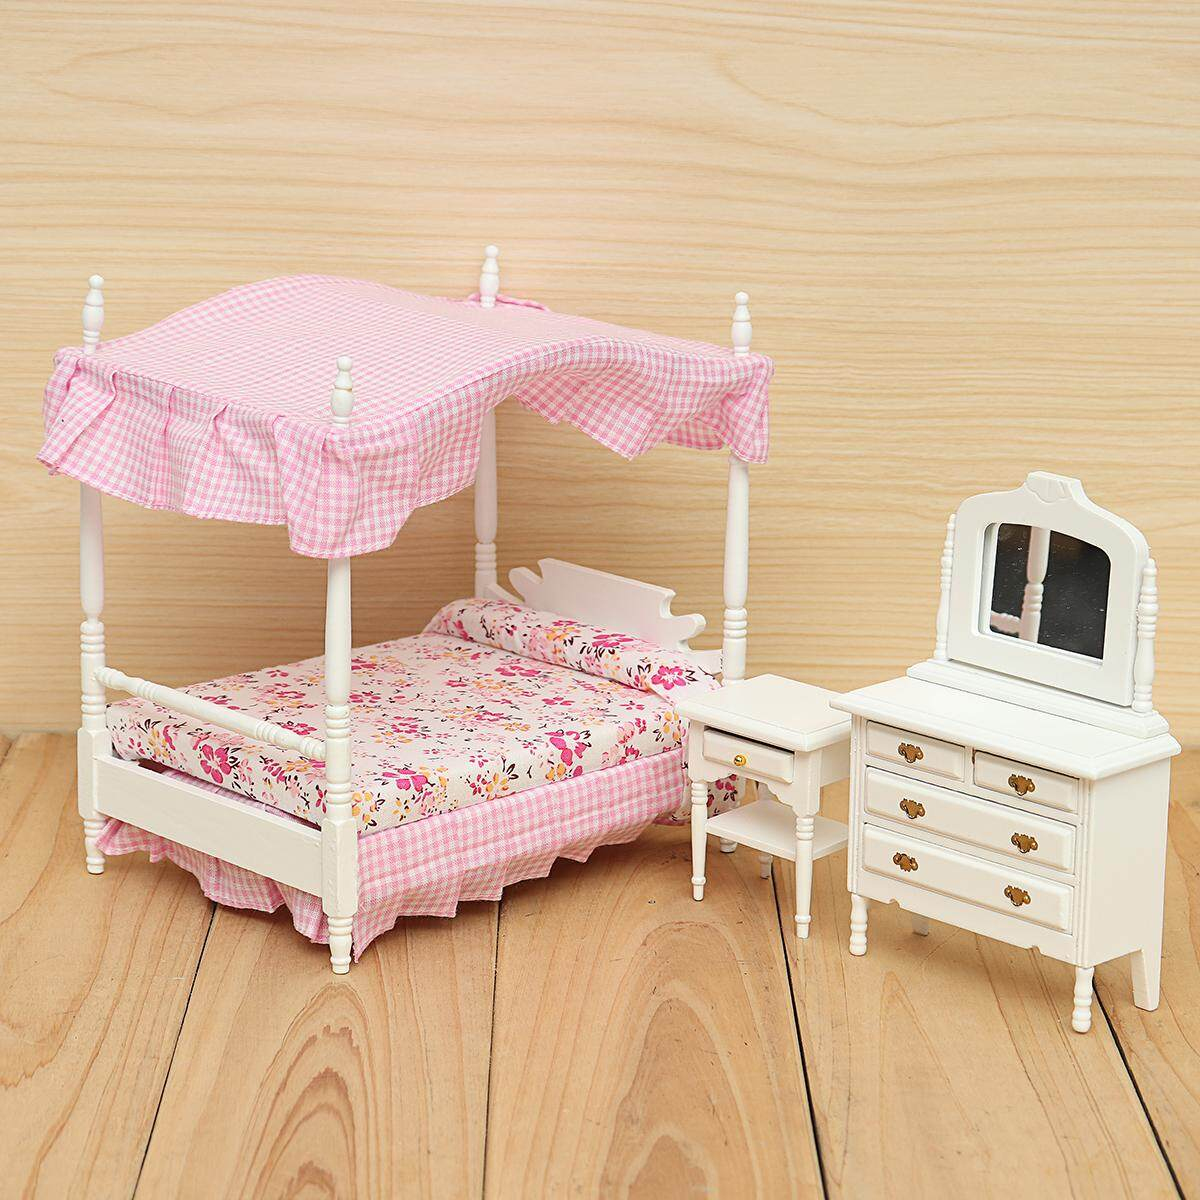 3Pcs 112 Dollhouse Miniature Furniture Pink Princess